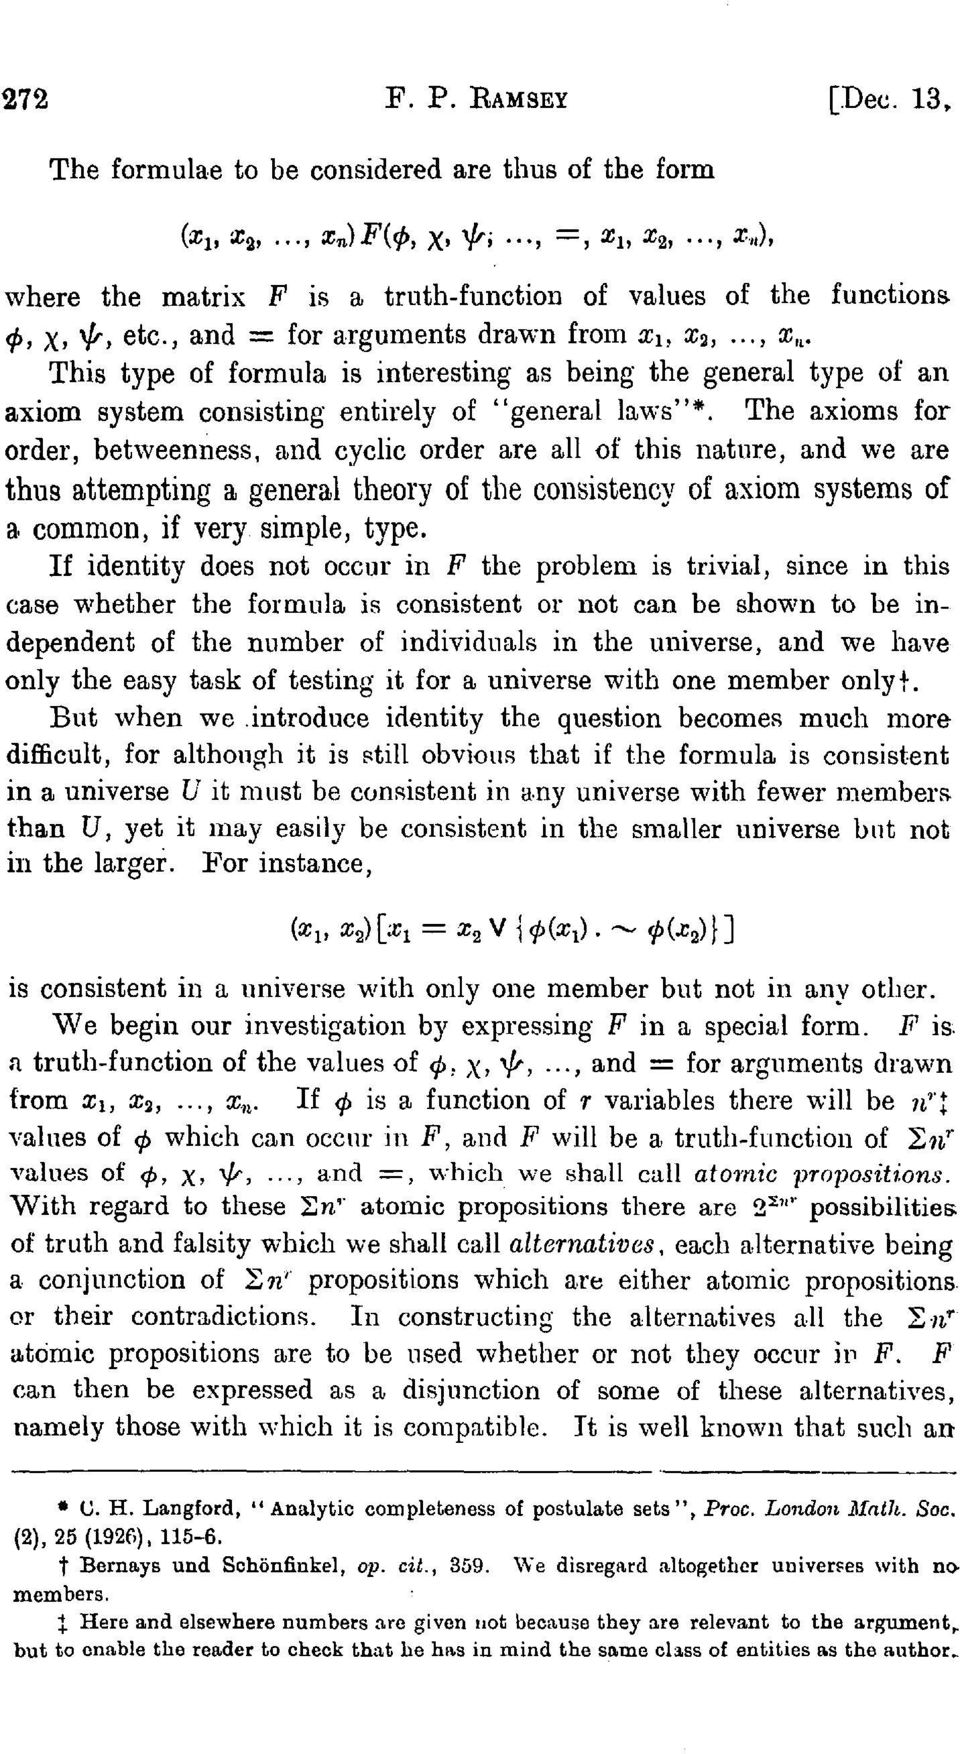 The axioms for order, betweenness, and cyclic order are all of this nature, and we are thus attempting a general theory of the consistency of axiom systems of a common, if very simple, type.